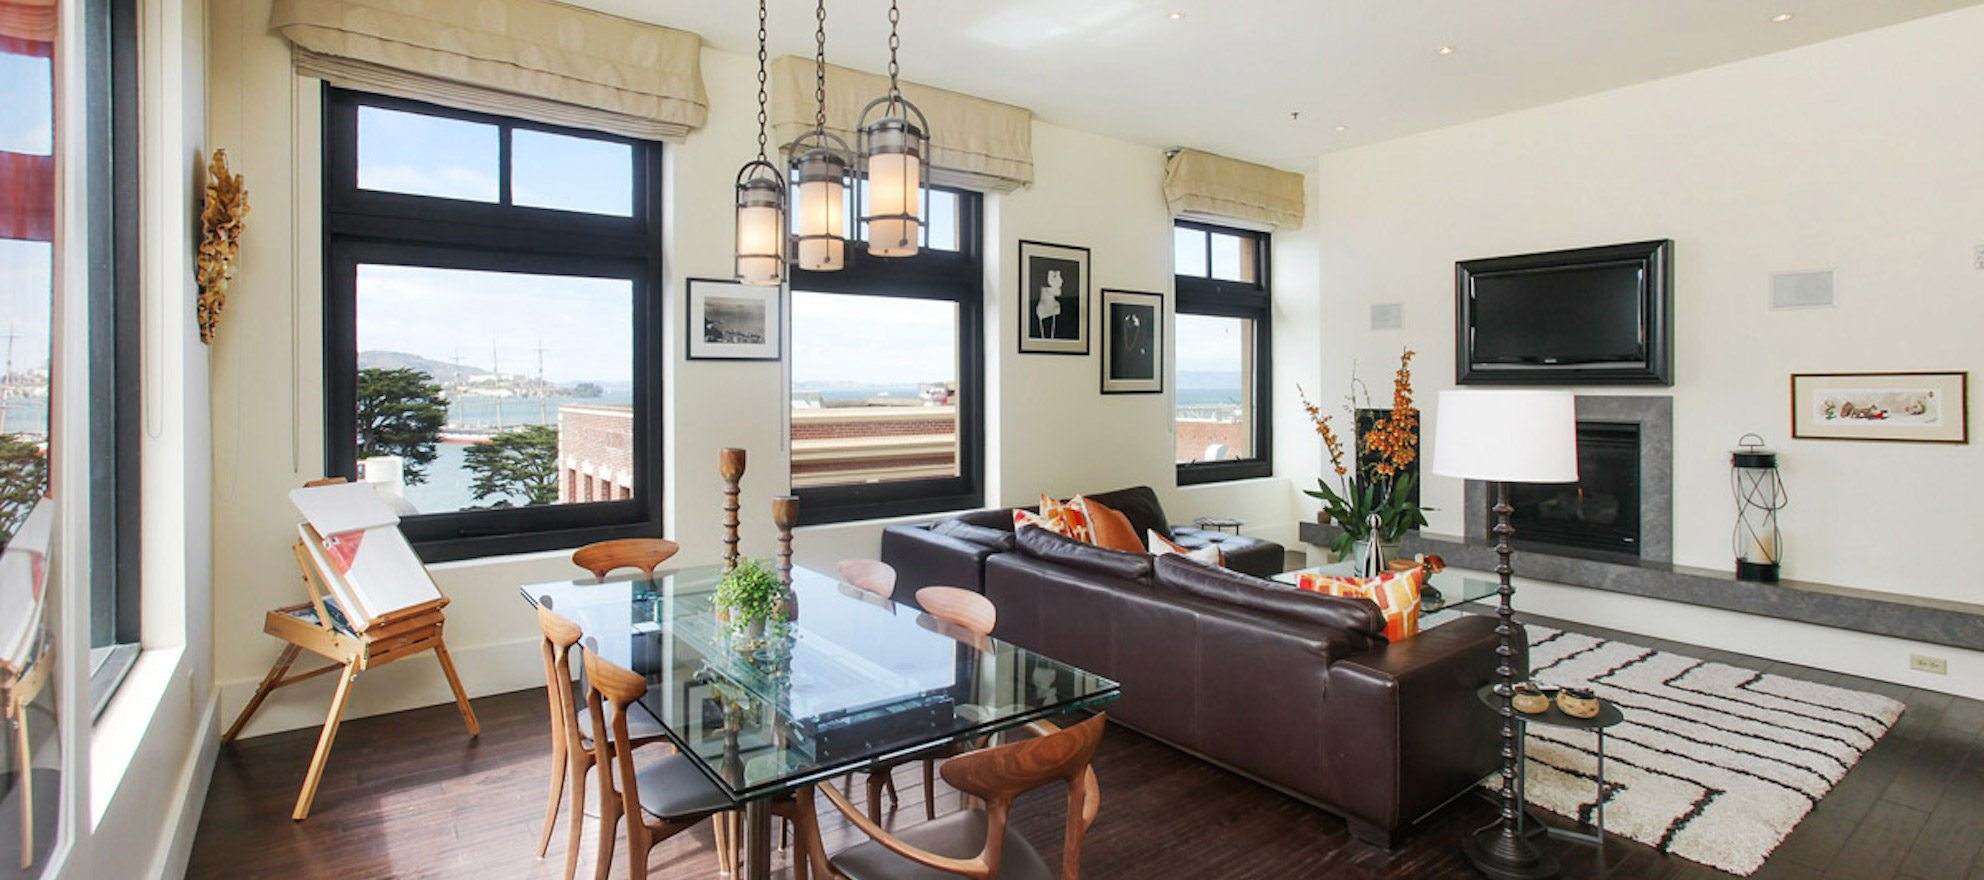 Luxury listing of the day: Russian Hill condo with view of San Francisco Bay